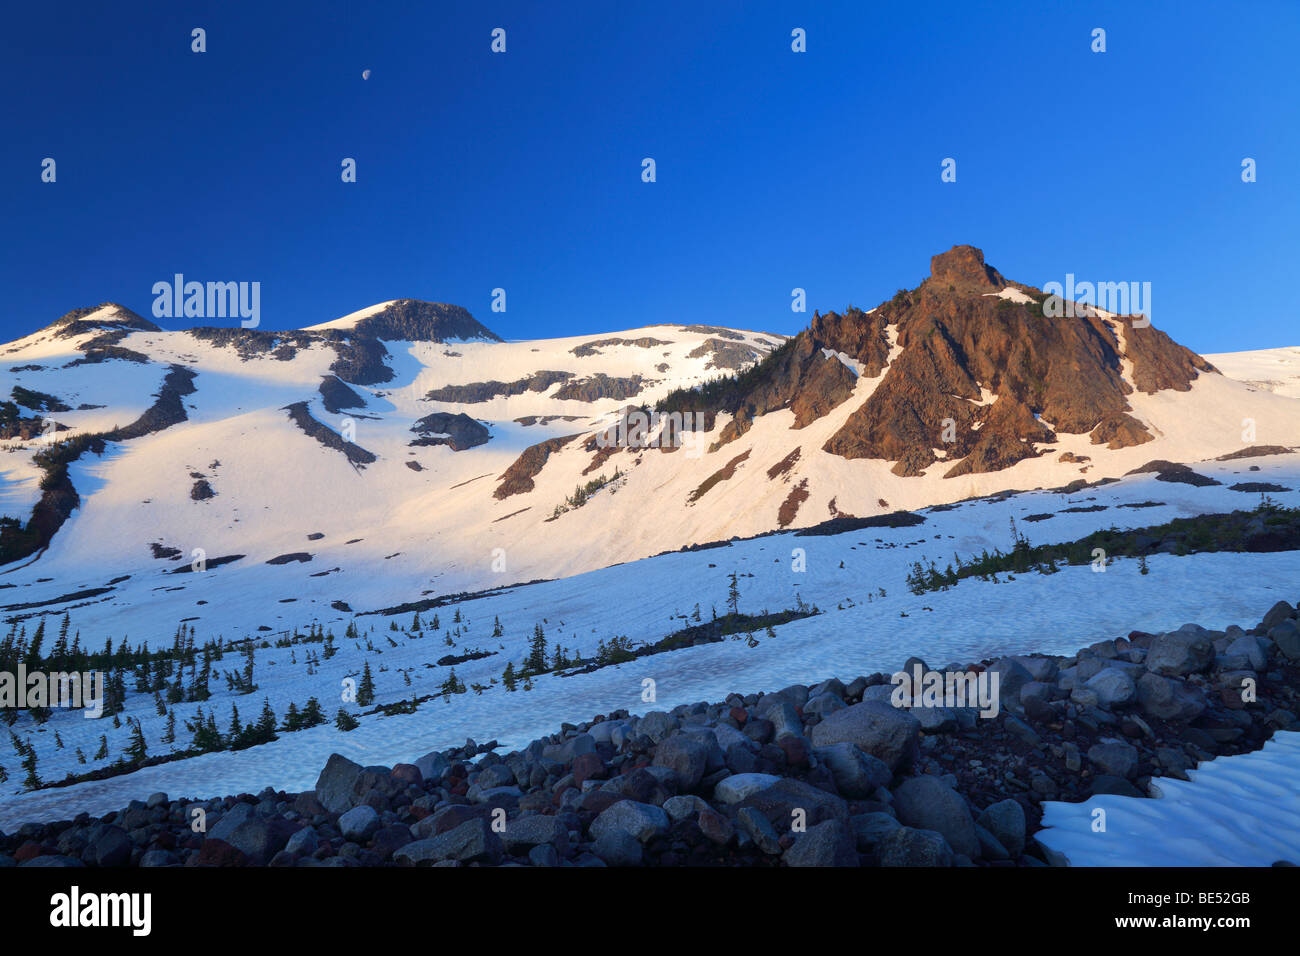 Mount Rainier Nationalpark Wildnis nahe Panhandle Passhöhe am Wegesrand im Winter Wonderland Stockbild